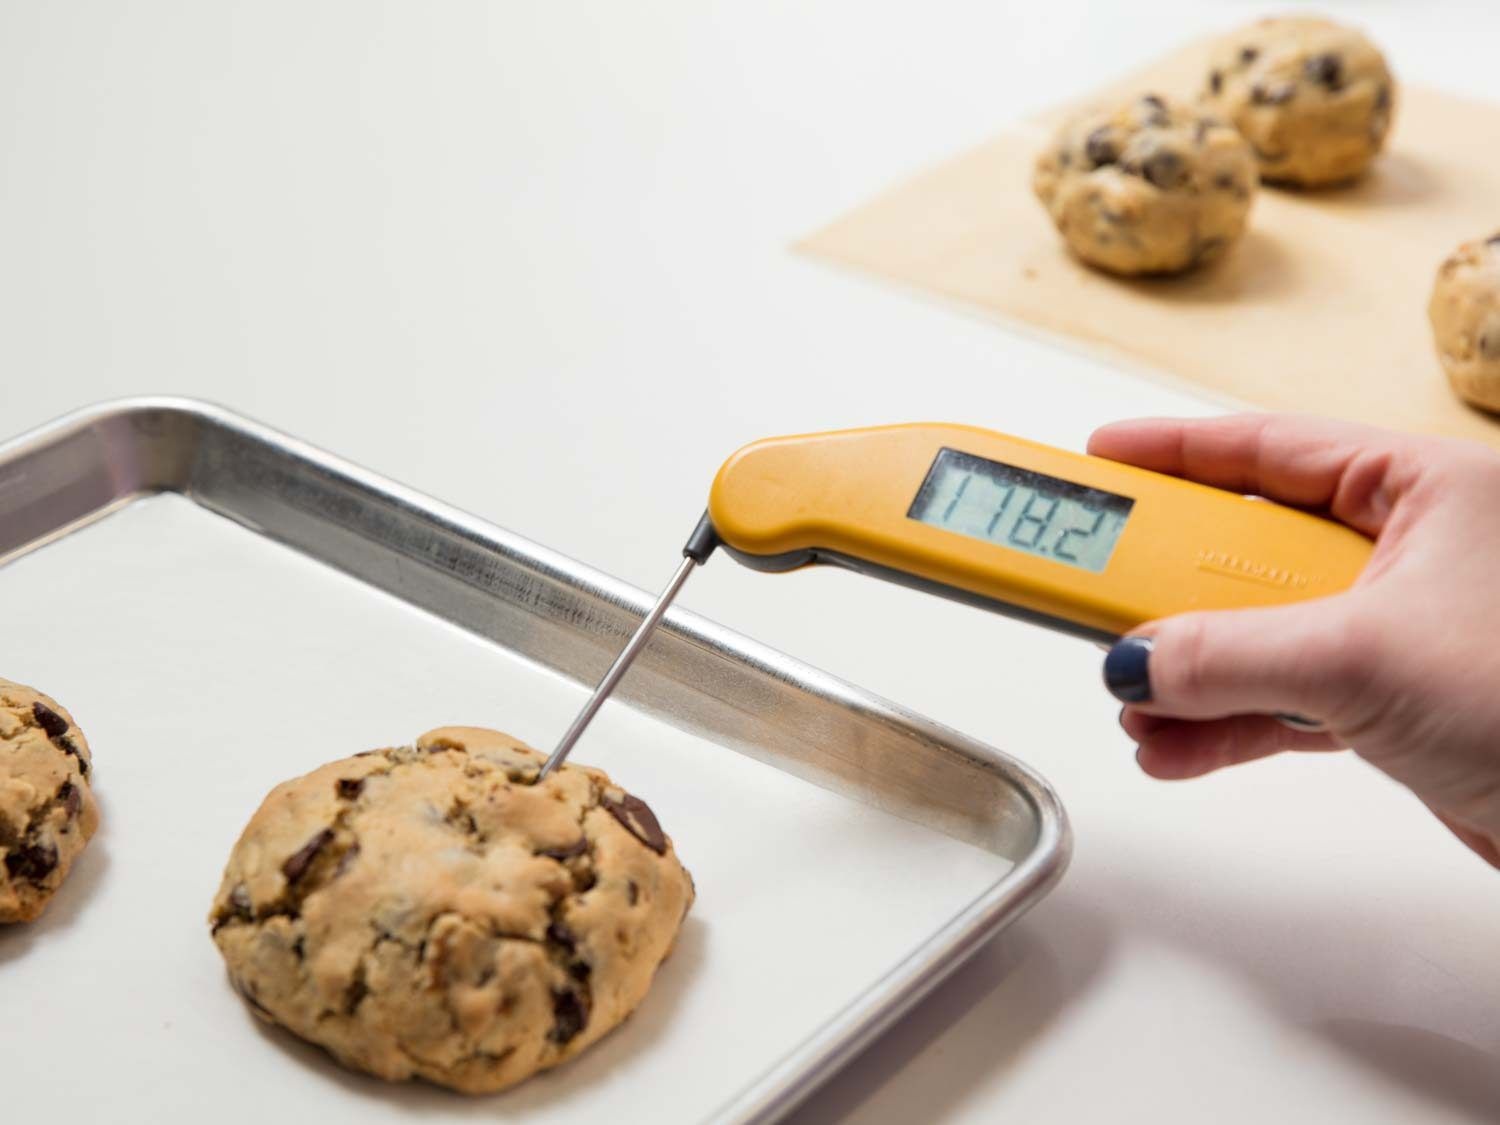 testing a thick cookie with a thermometer